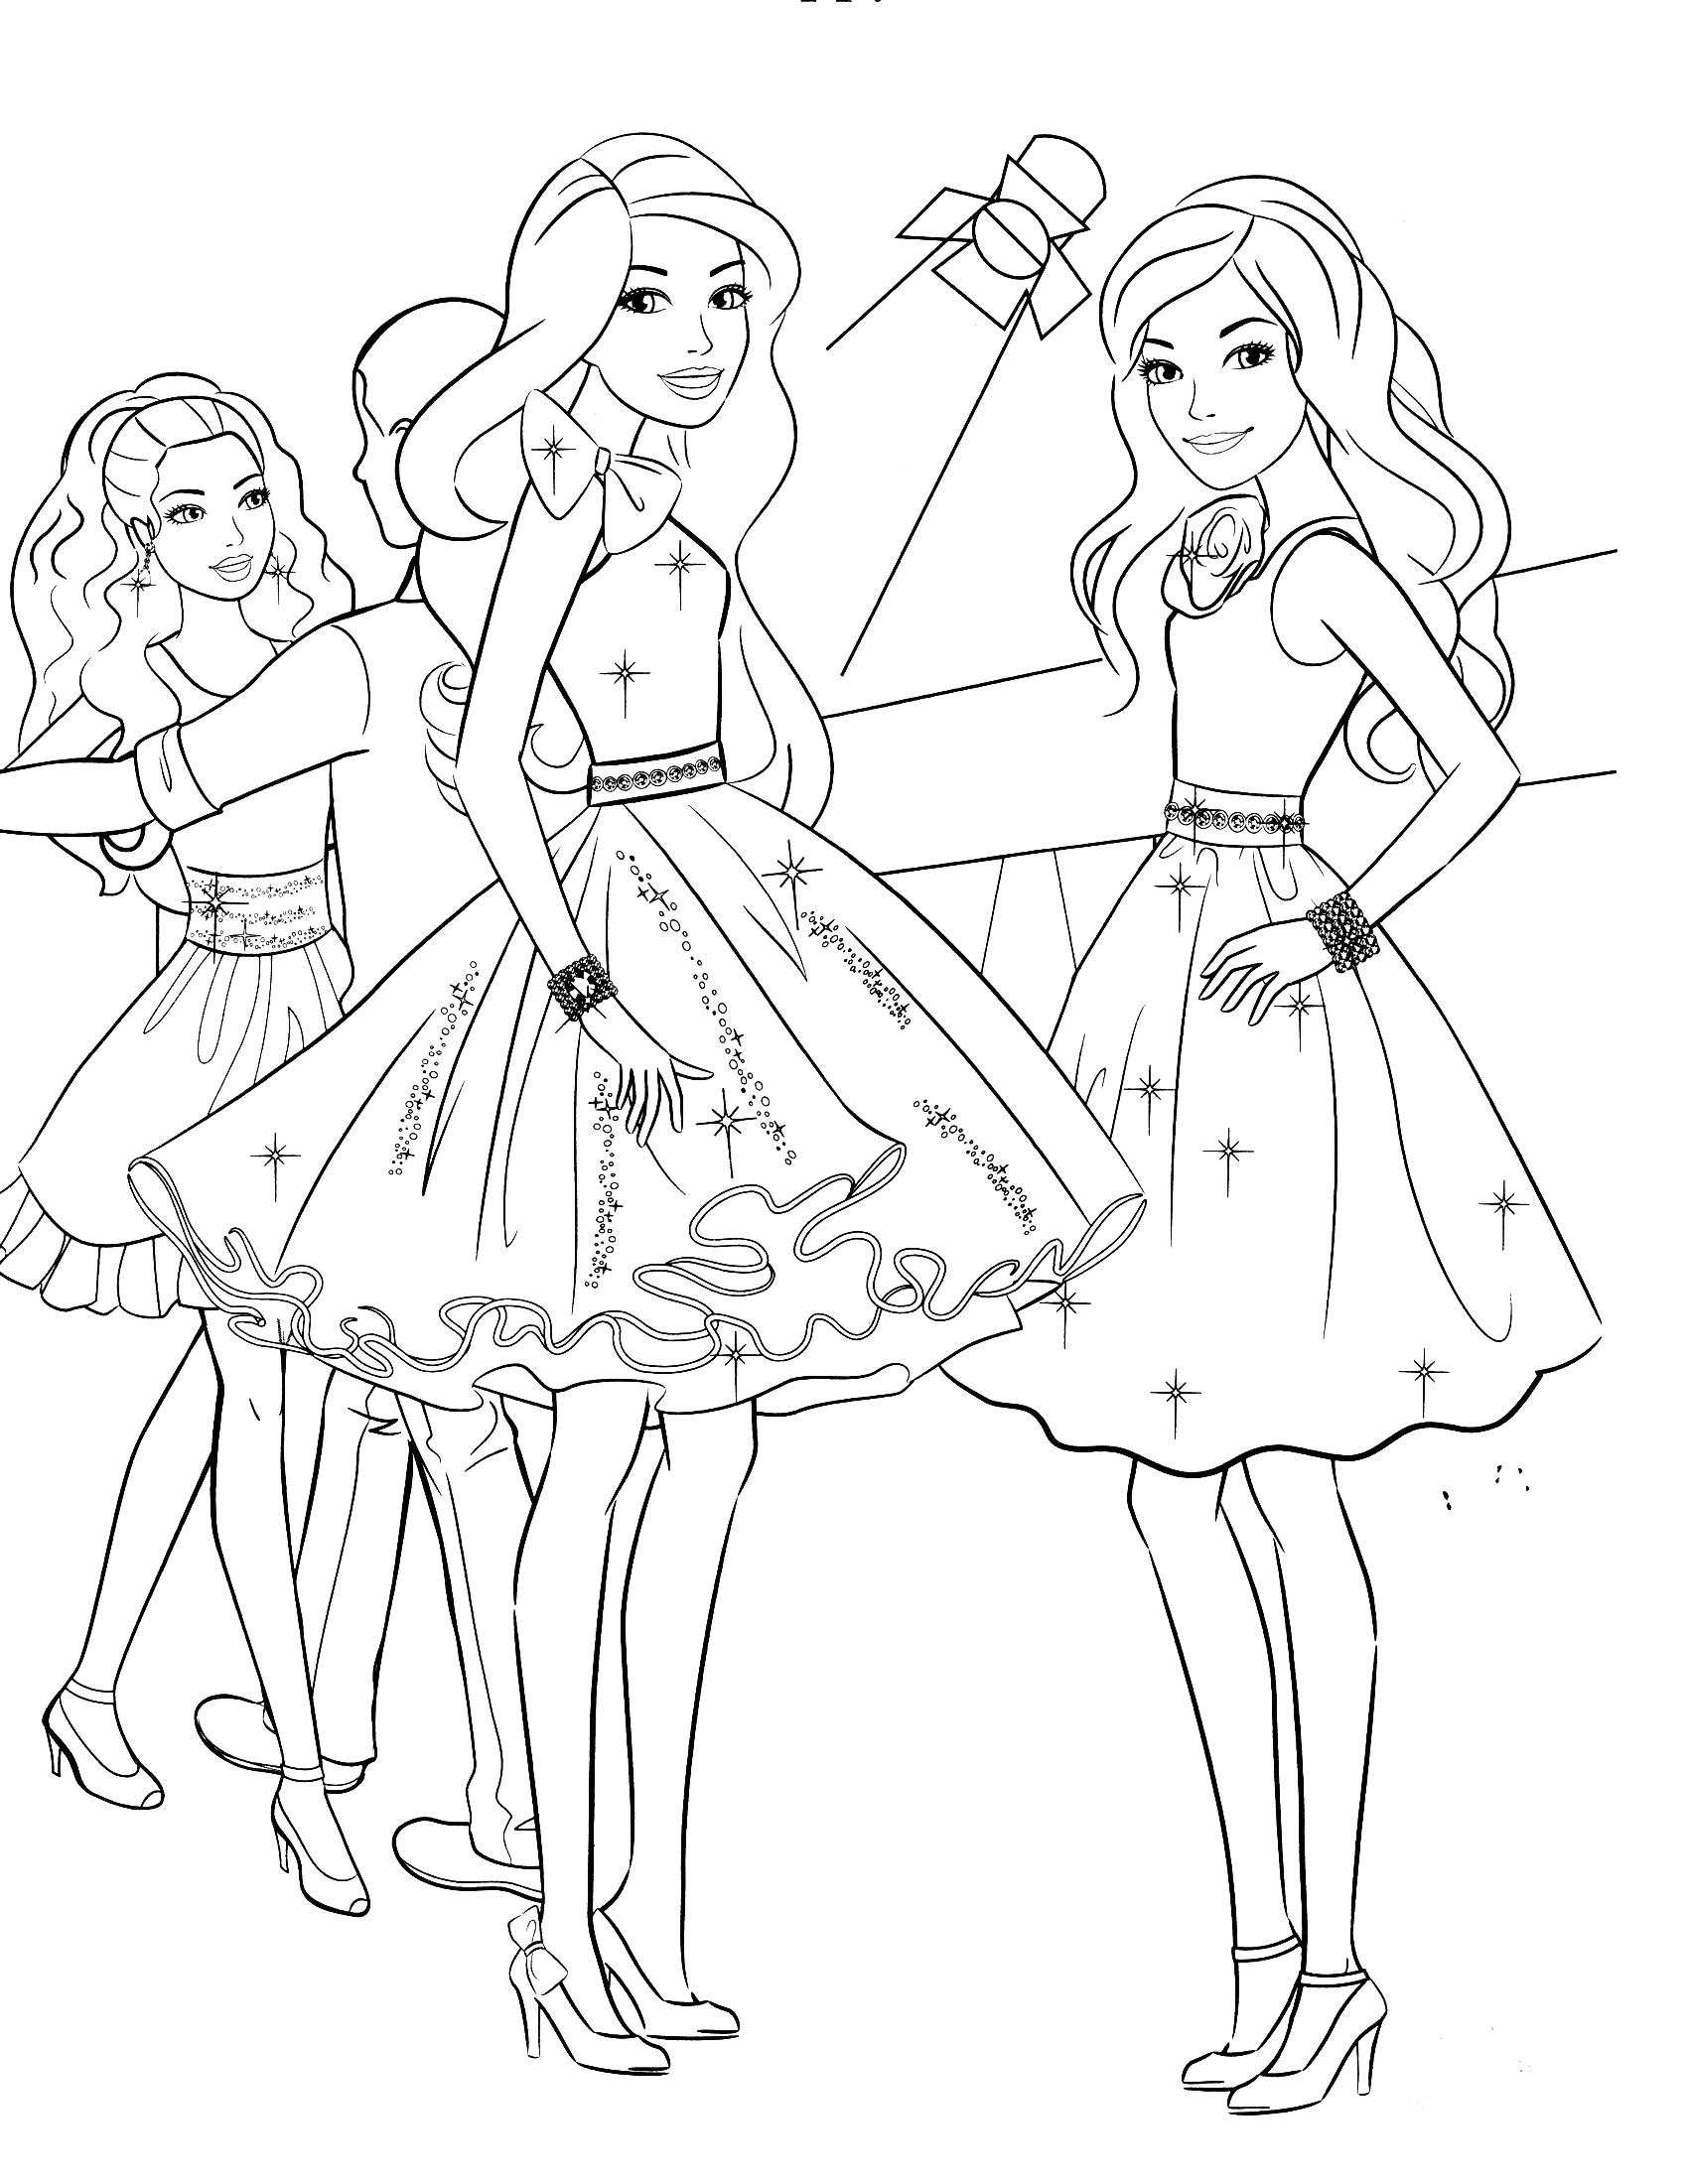 Barbie A Fashion Fairytale Coloring Pages to Print Barbie Coloring Pages Fashion Fairytale